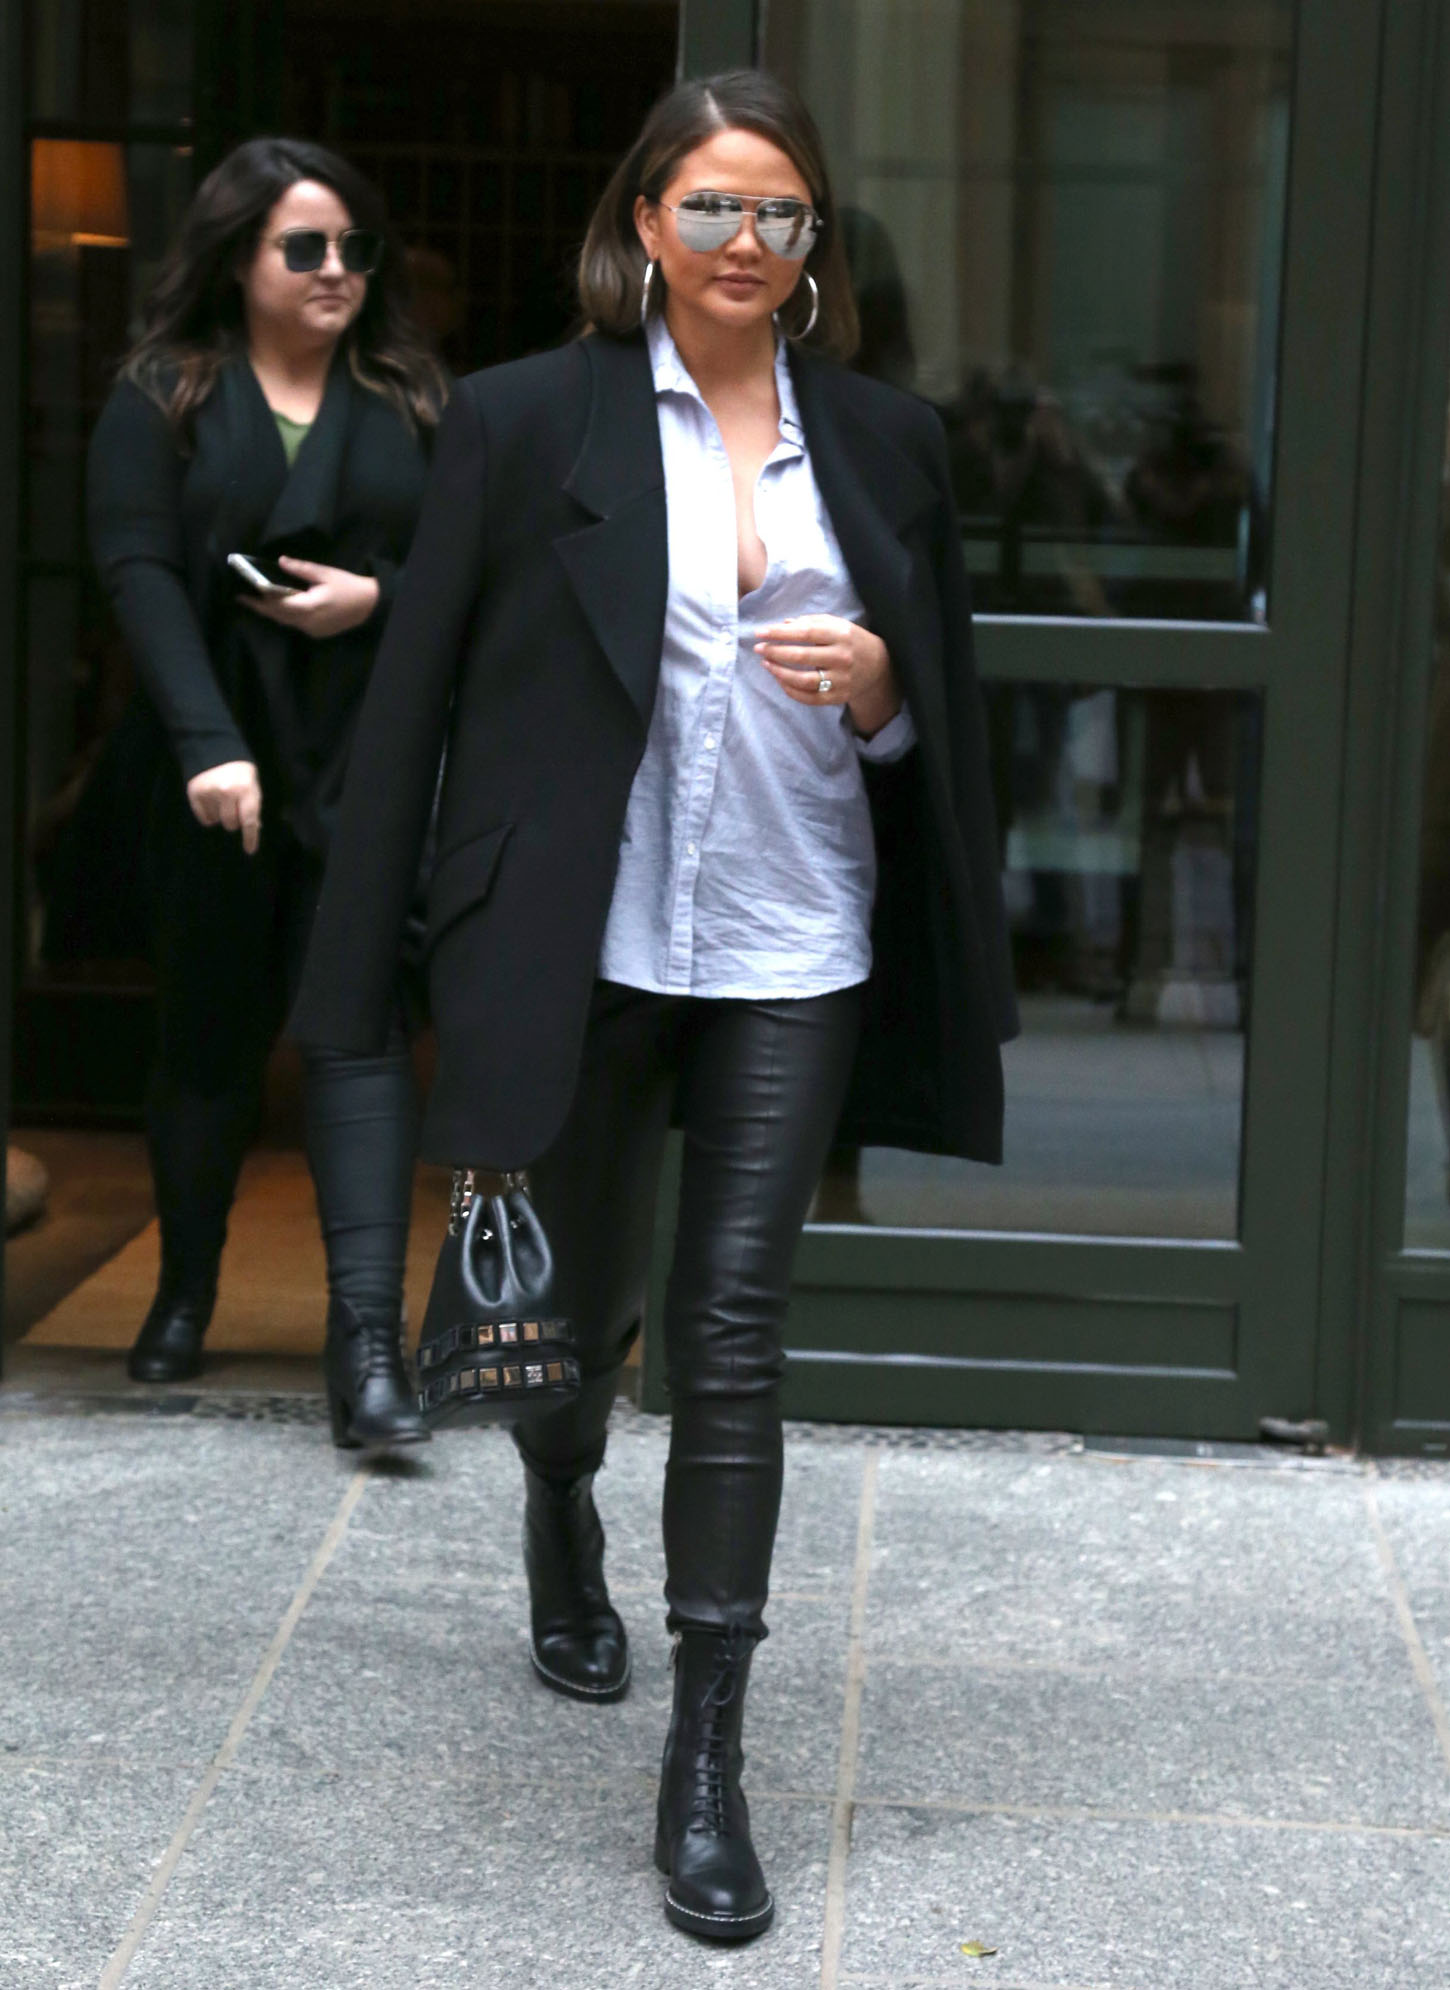 , New York, NY - 11/07/2017 - Chrissy Teigen in Leather Pants and Black Jacket out in Manhattan  -PICTURED: Chrissy Teigen -, Image: 354862994, License: Rights-managed, Restrictions: , Model Release: no, Credit line: Profimedia, INSTAR Images